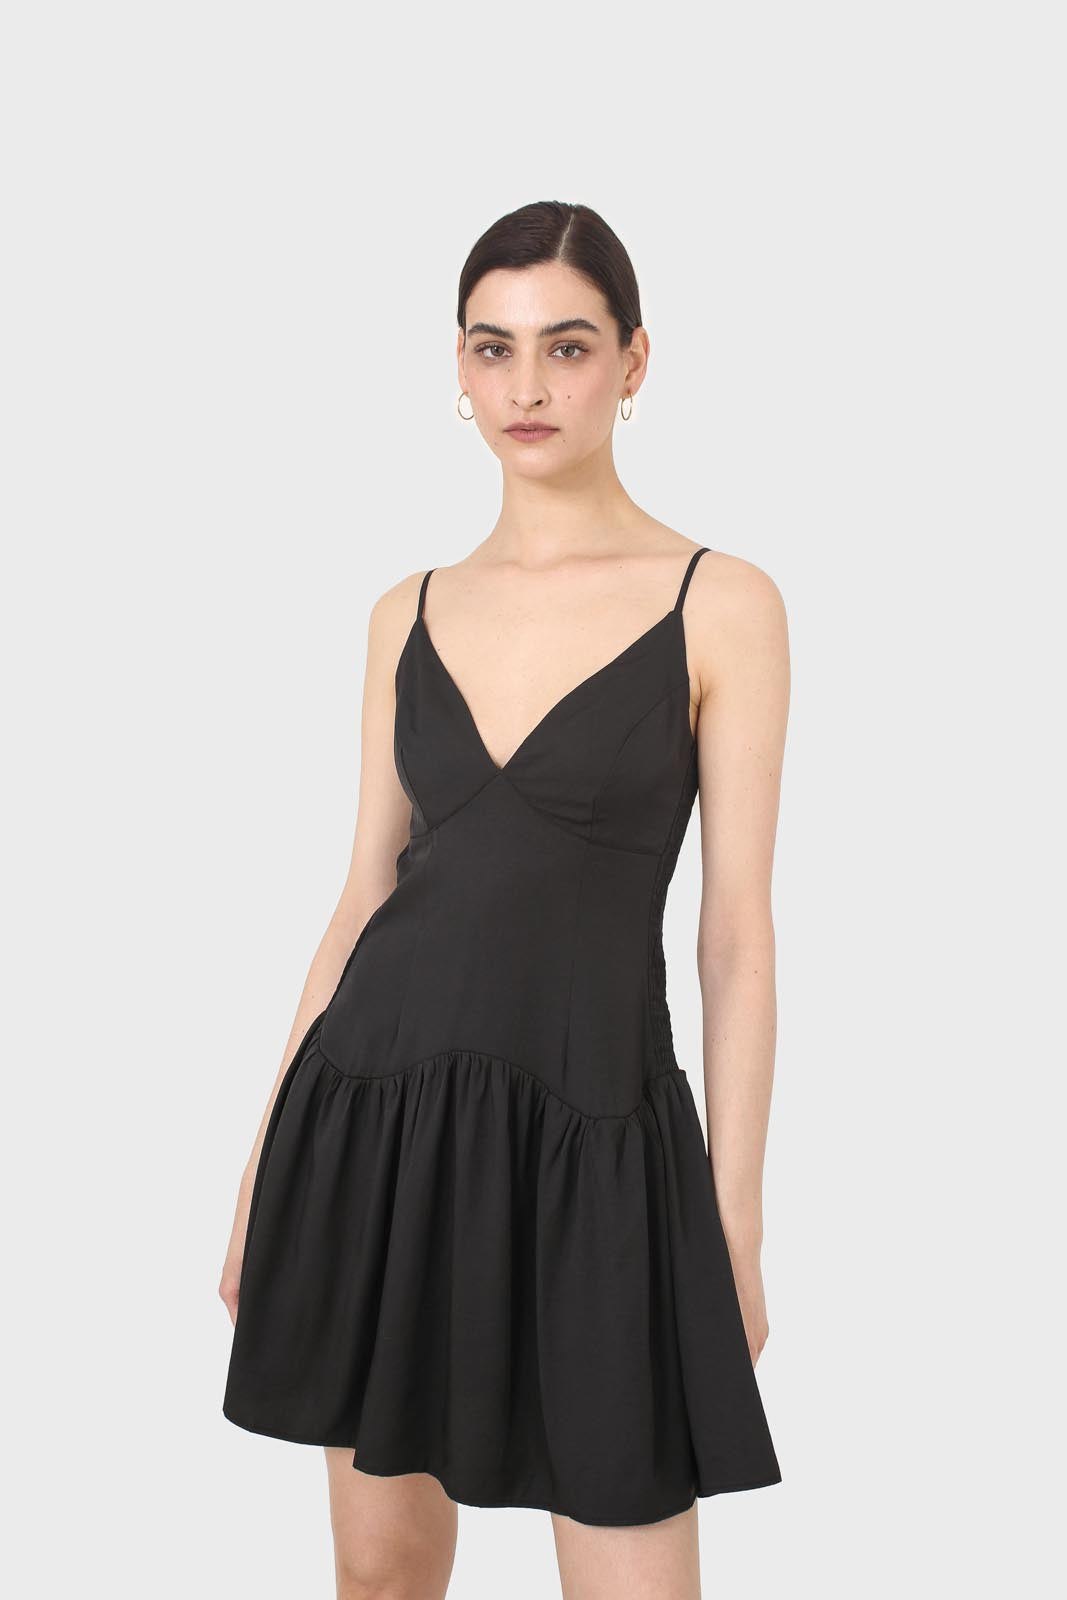 Black spaghetti strap tie back mini dress7